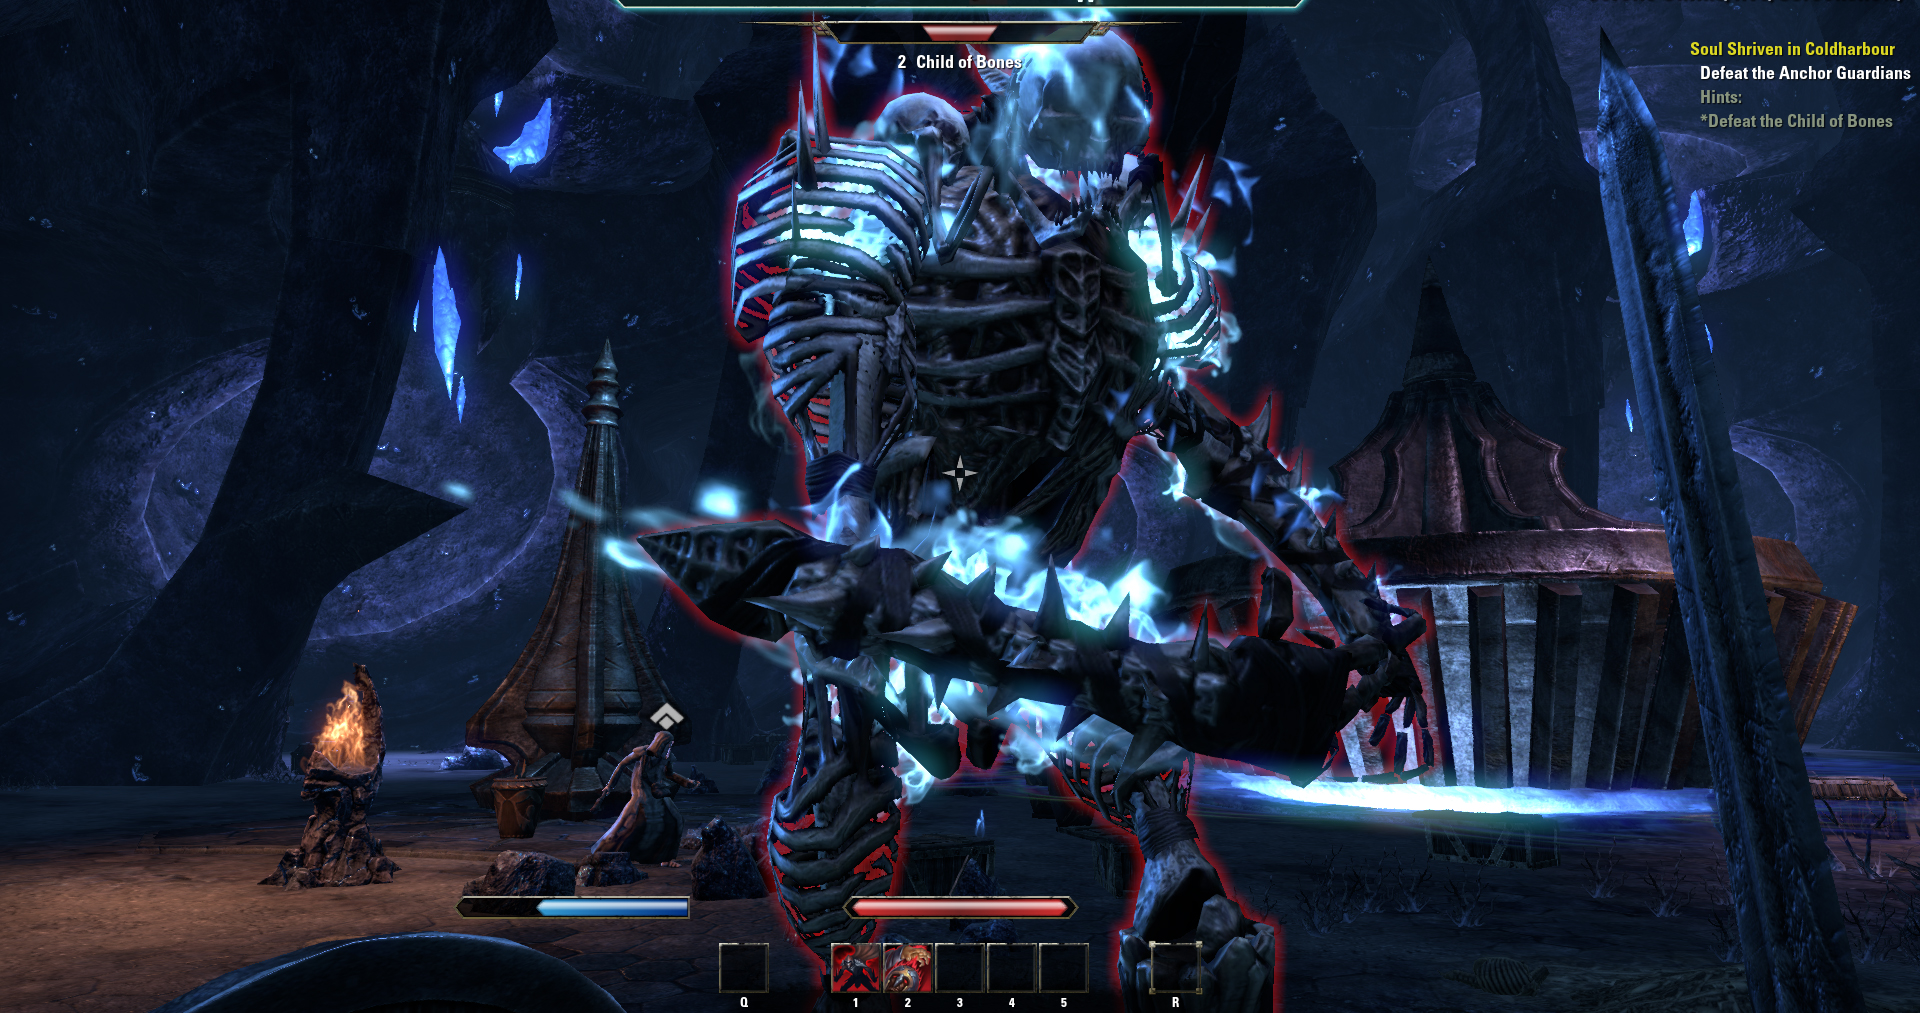 ESO_screenshot3